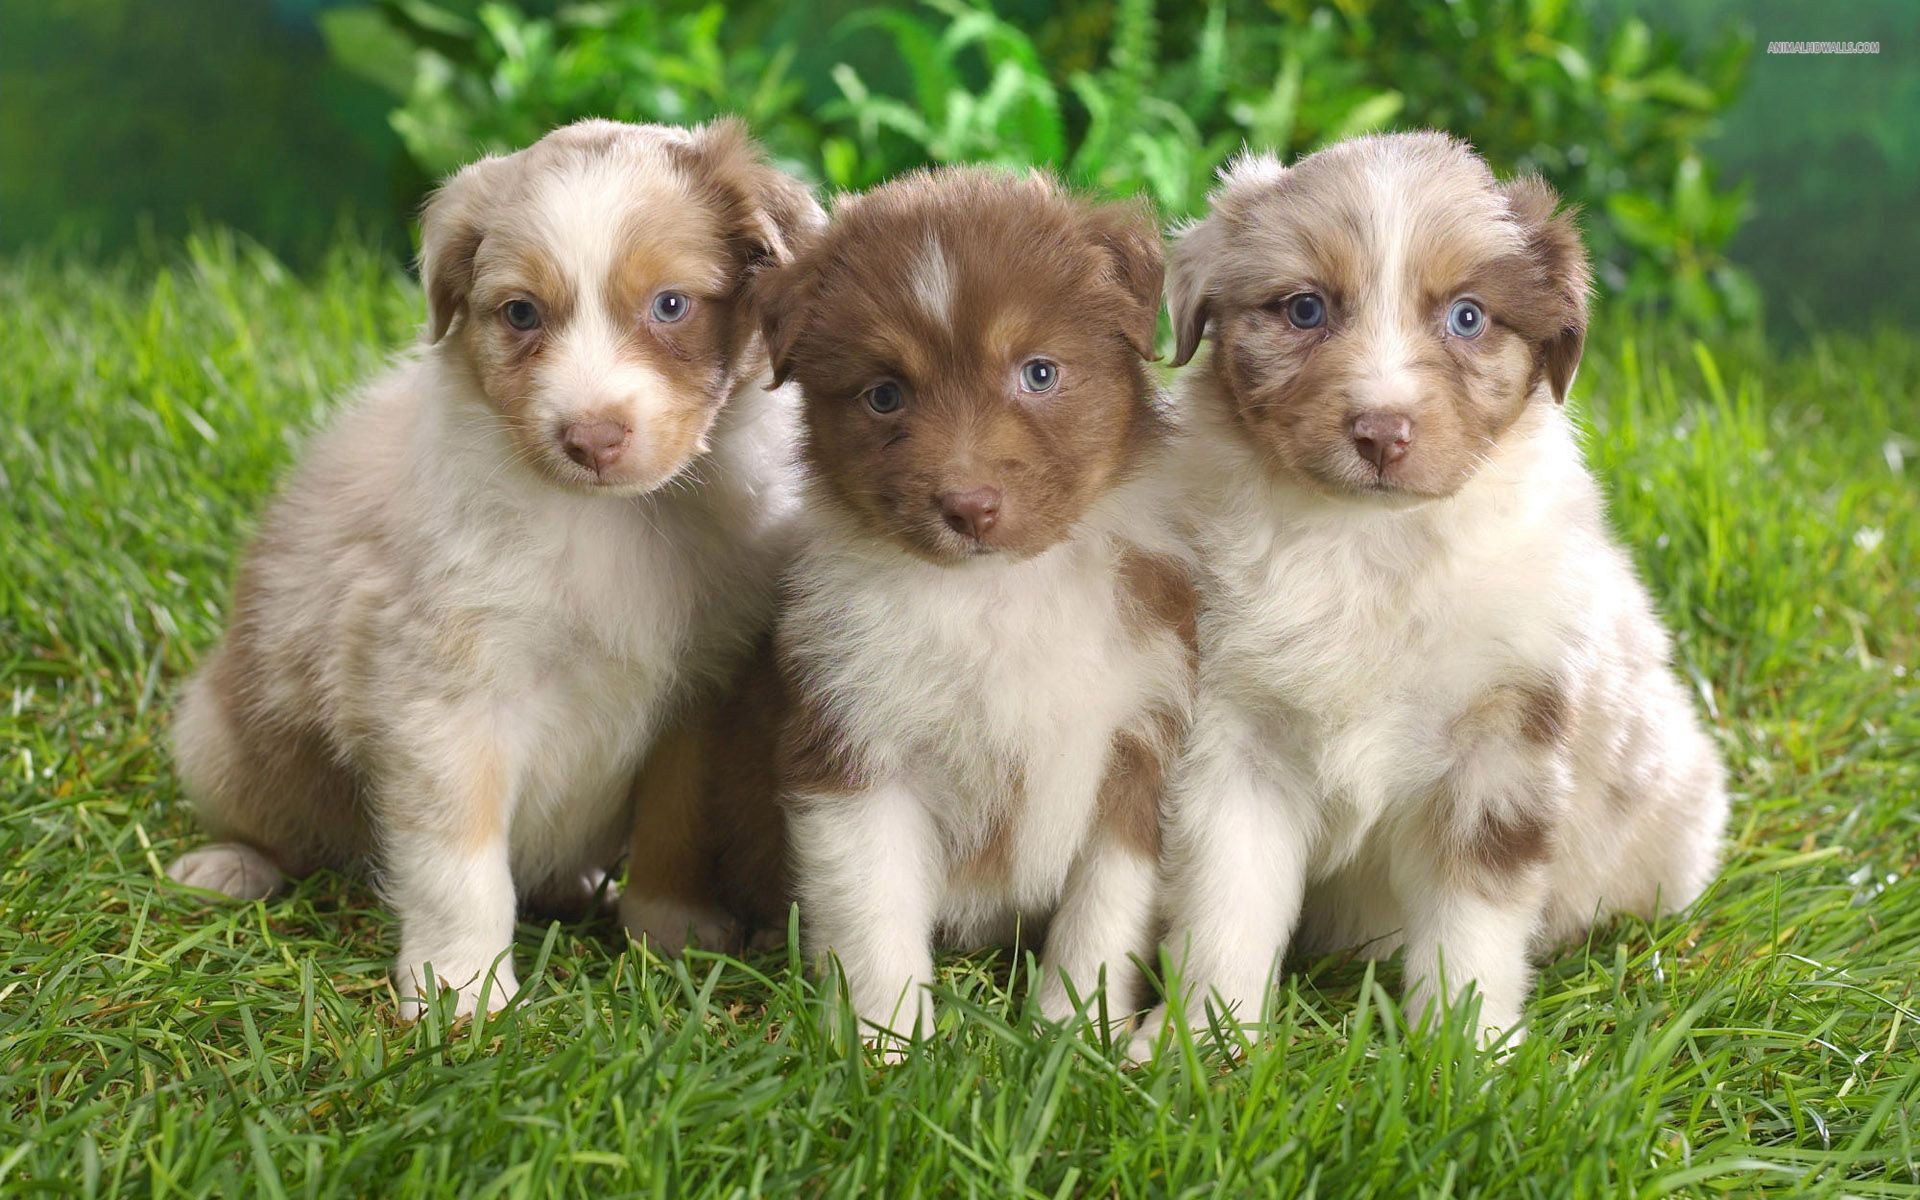 Australian Shepherd Wallpaper Pictures 8406 4256 x 2832 ...